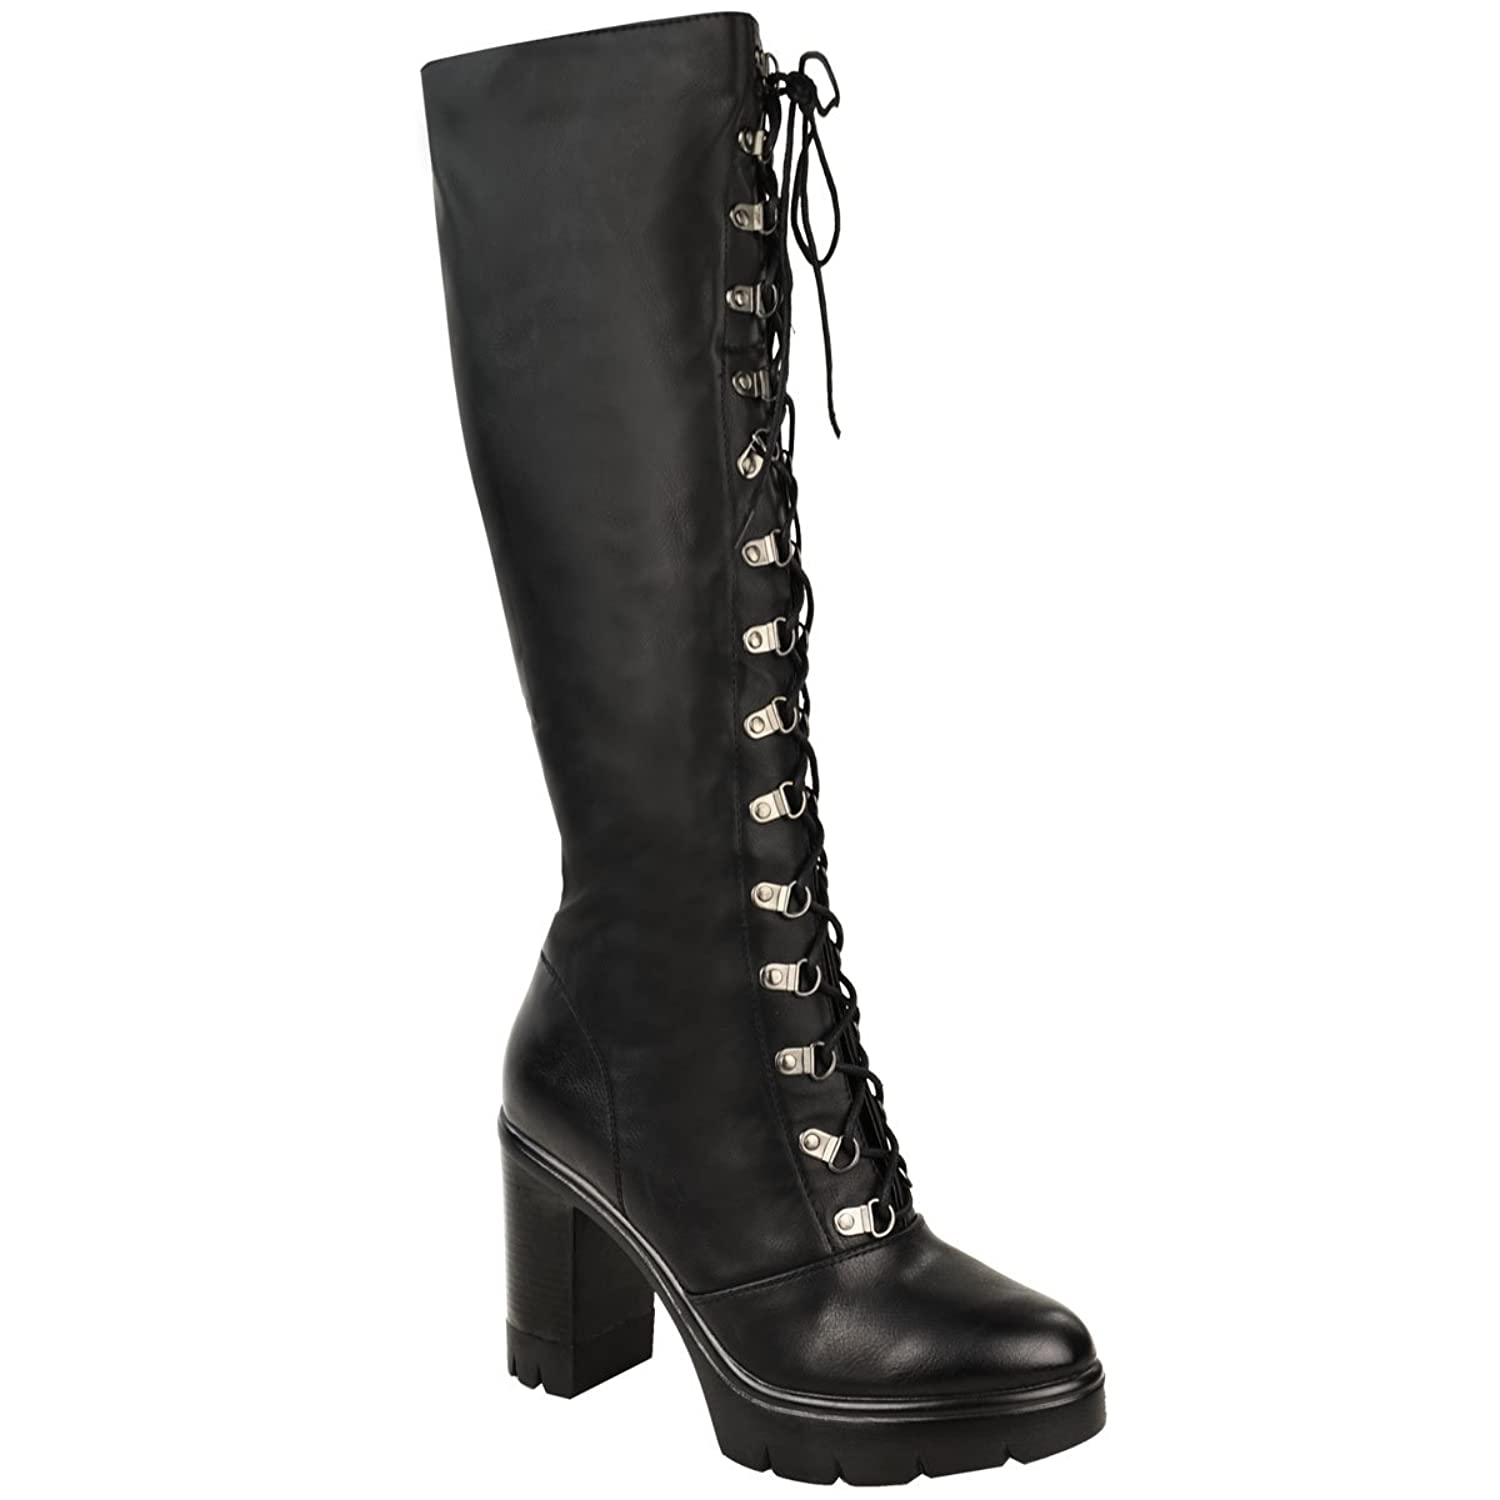 Fashion Thirsty Womens Chunky Block Heel Cleated Sole Lace Up Goth Punk Knee High Biker Boots Size